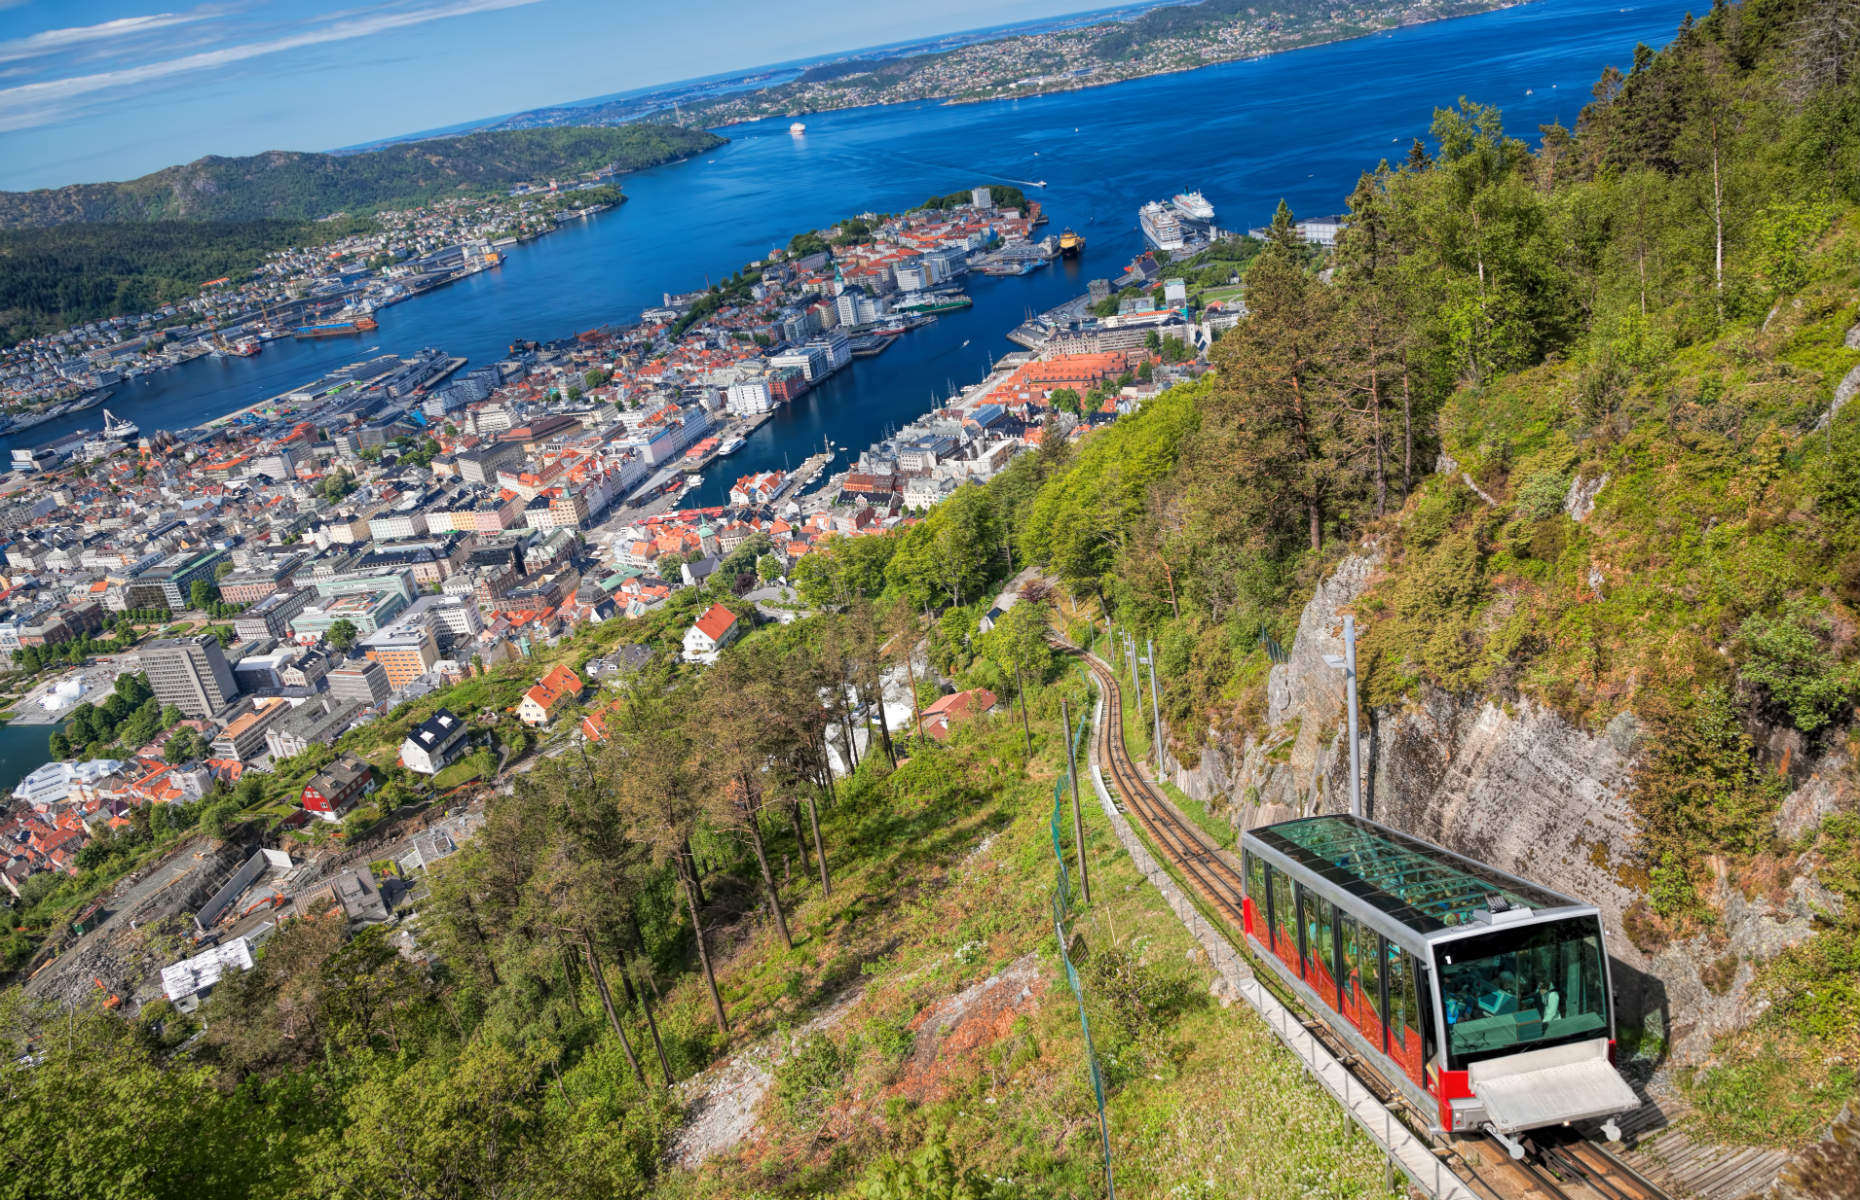 The funicular riding up the Fløibanen with a view of Bergen below (Image: Samot/Shutterstock)